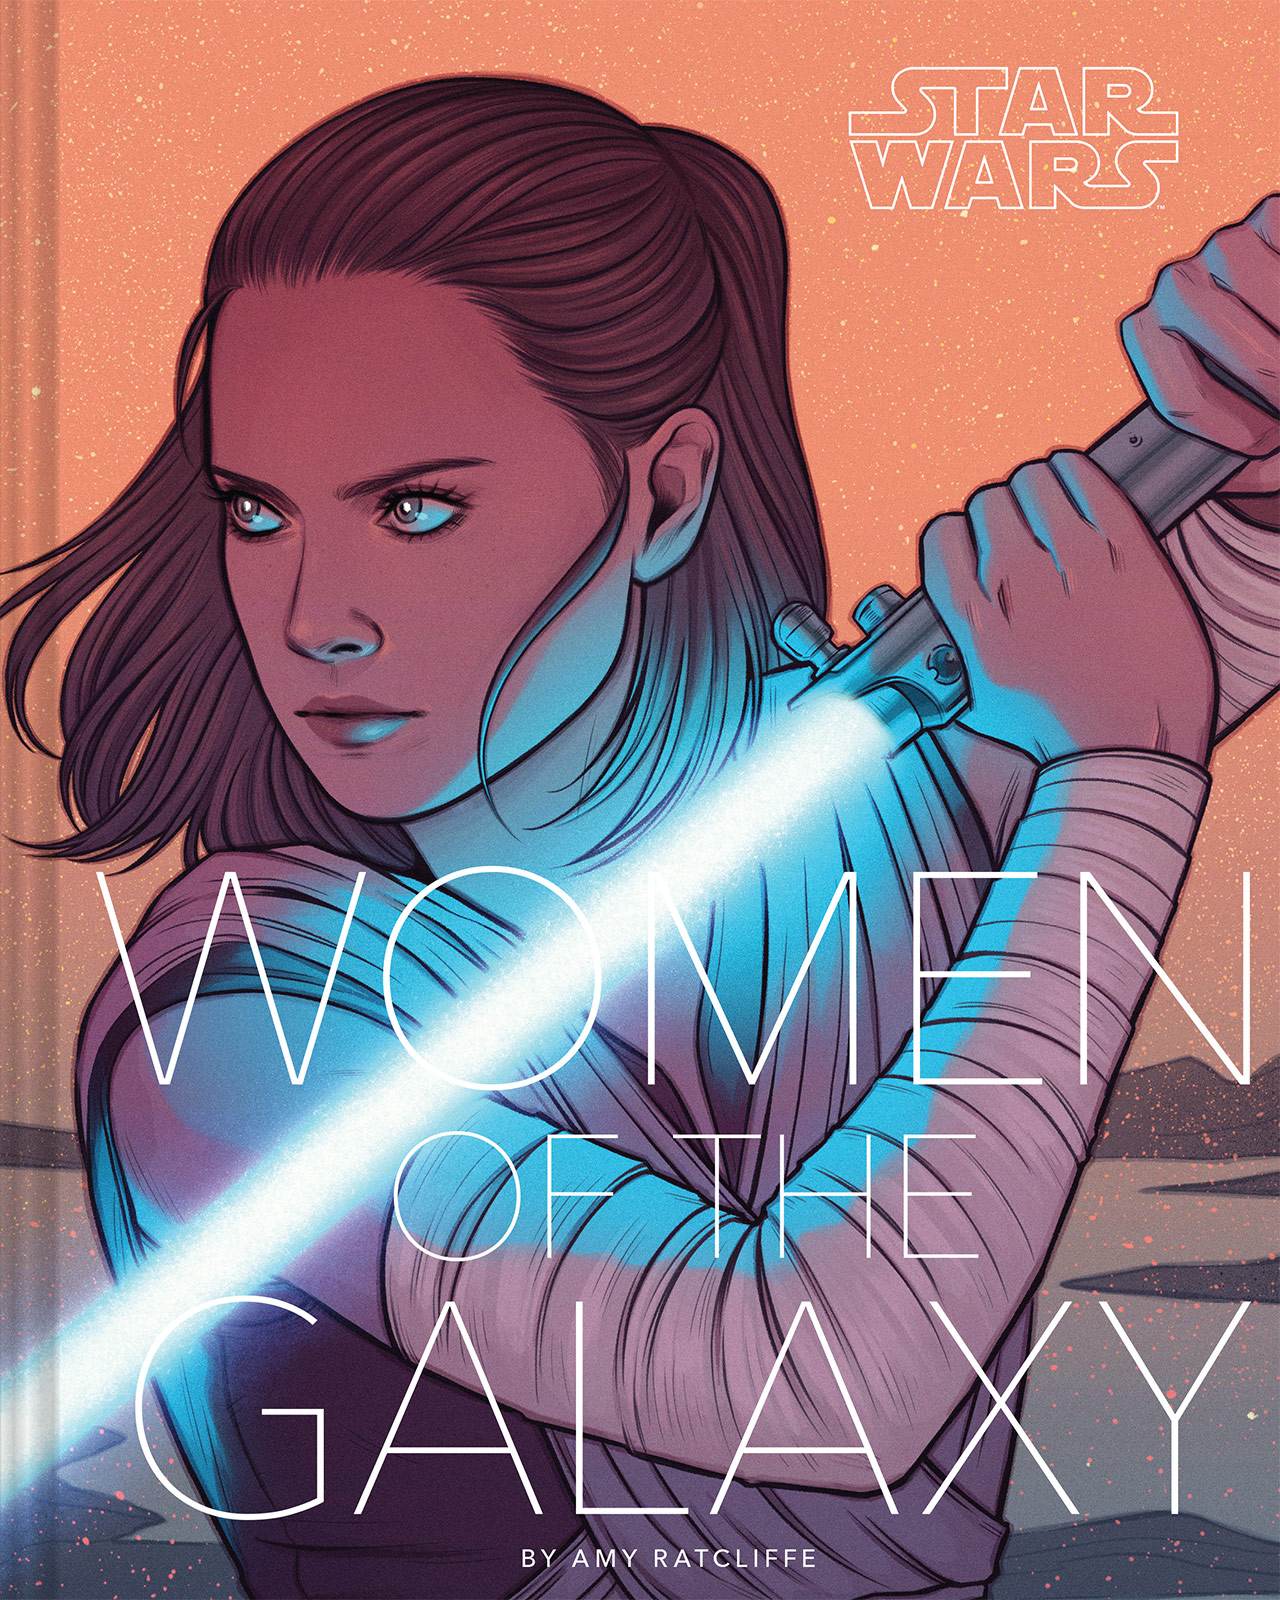 Cool gifts for tween girls: Star Wars Women of the Galaxy book